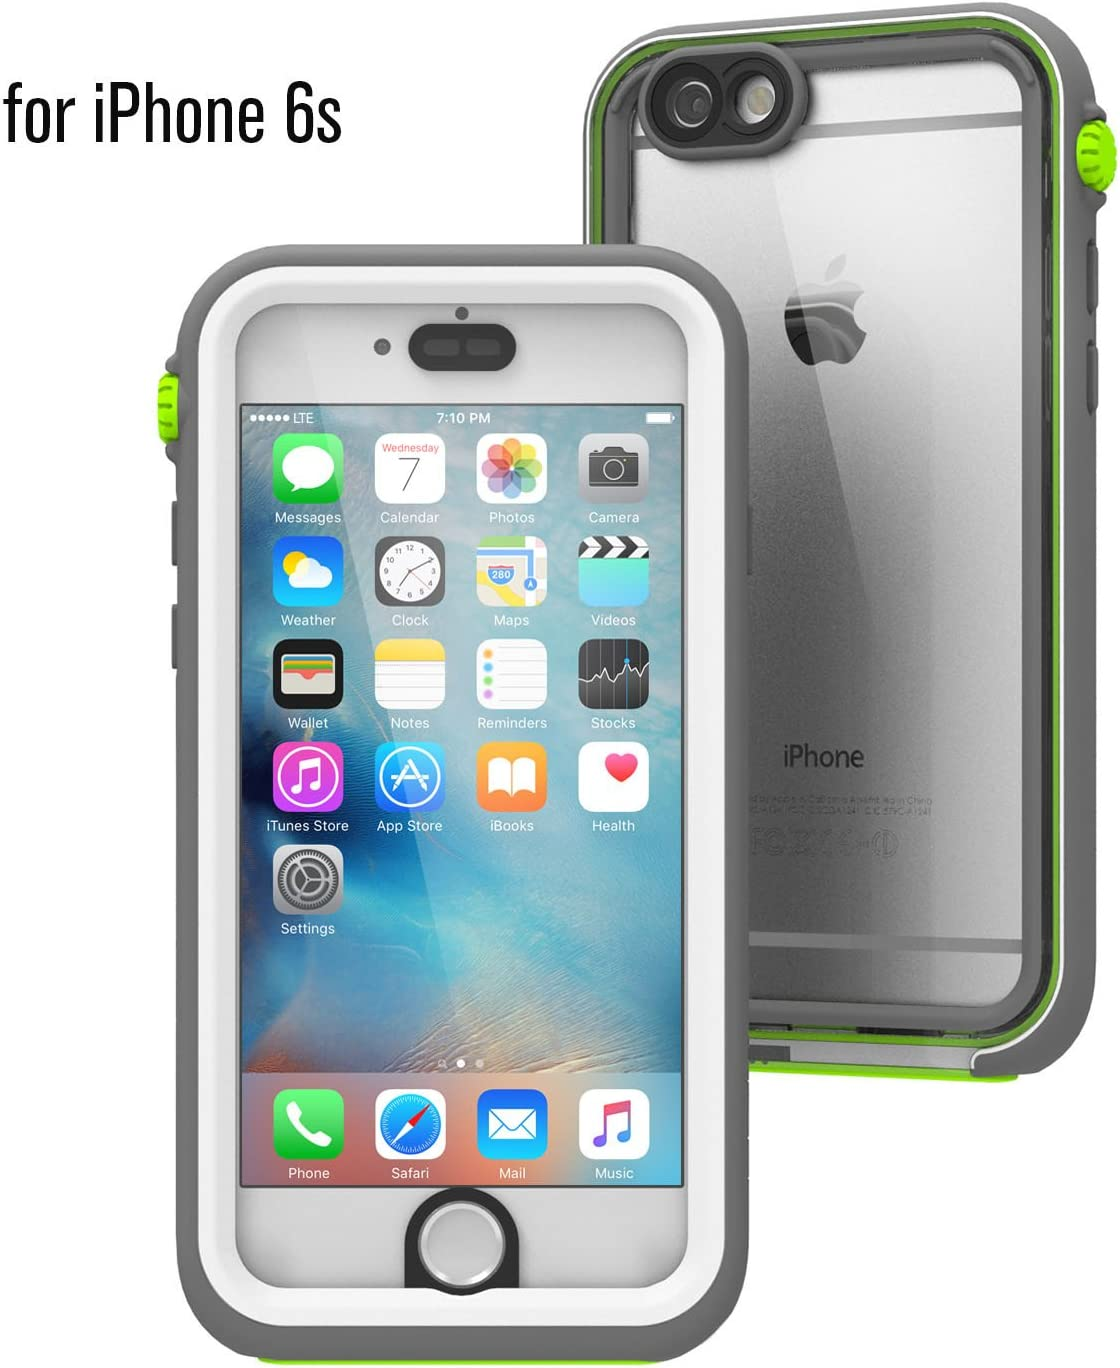 Catalyst Waterproof case for iPhone 6s, Shock Proof, Drop Proof for iPhone 6s with High Touch Sensitivity ID (Green Pop)